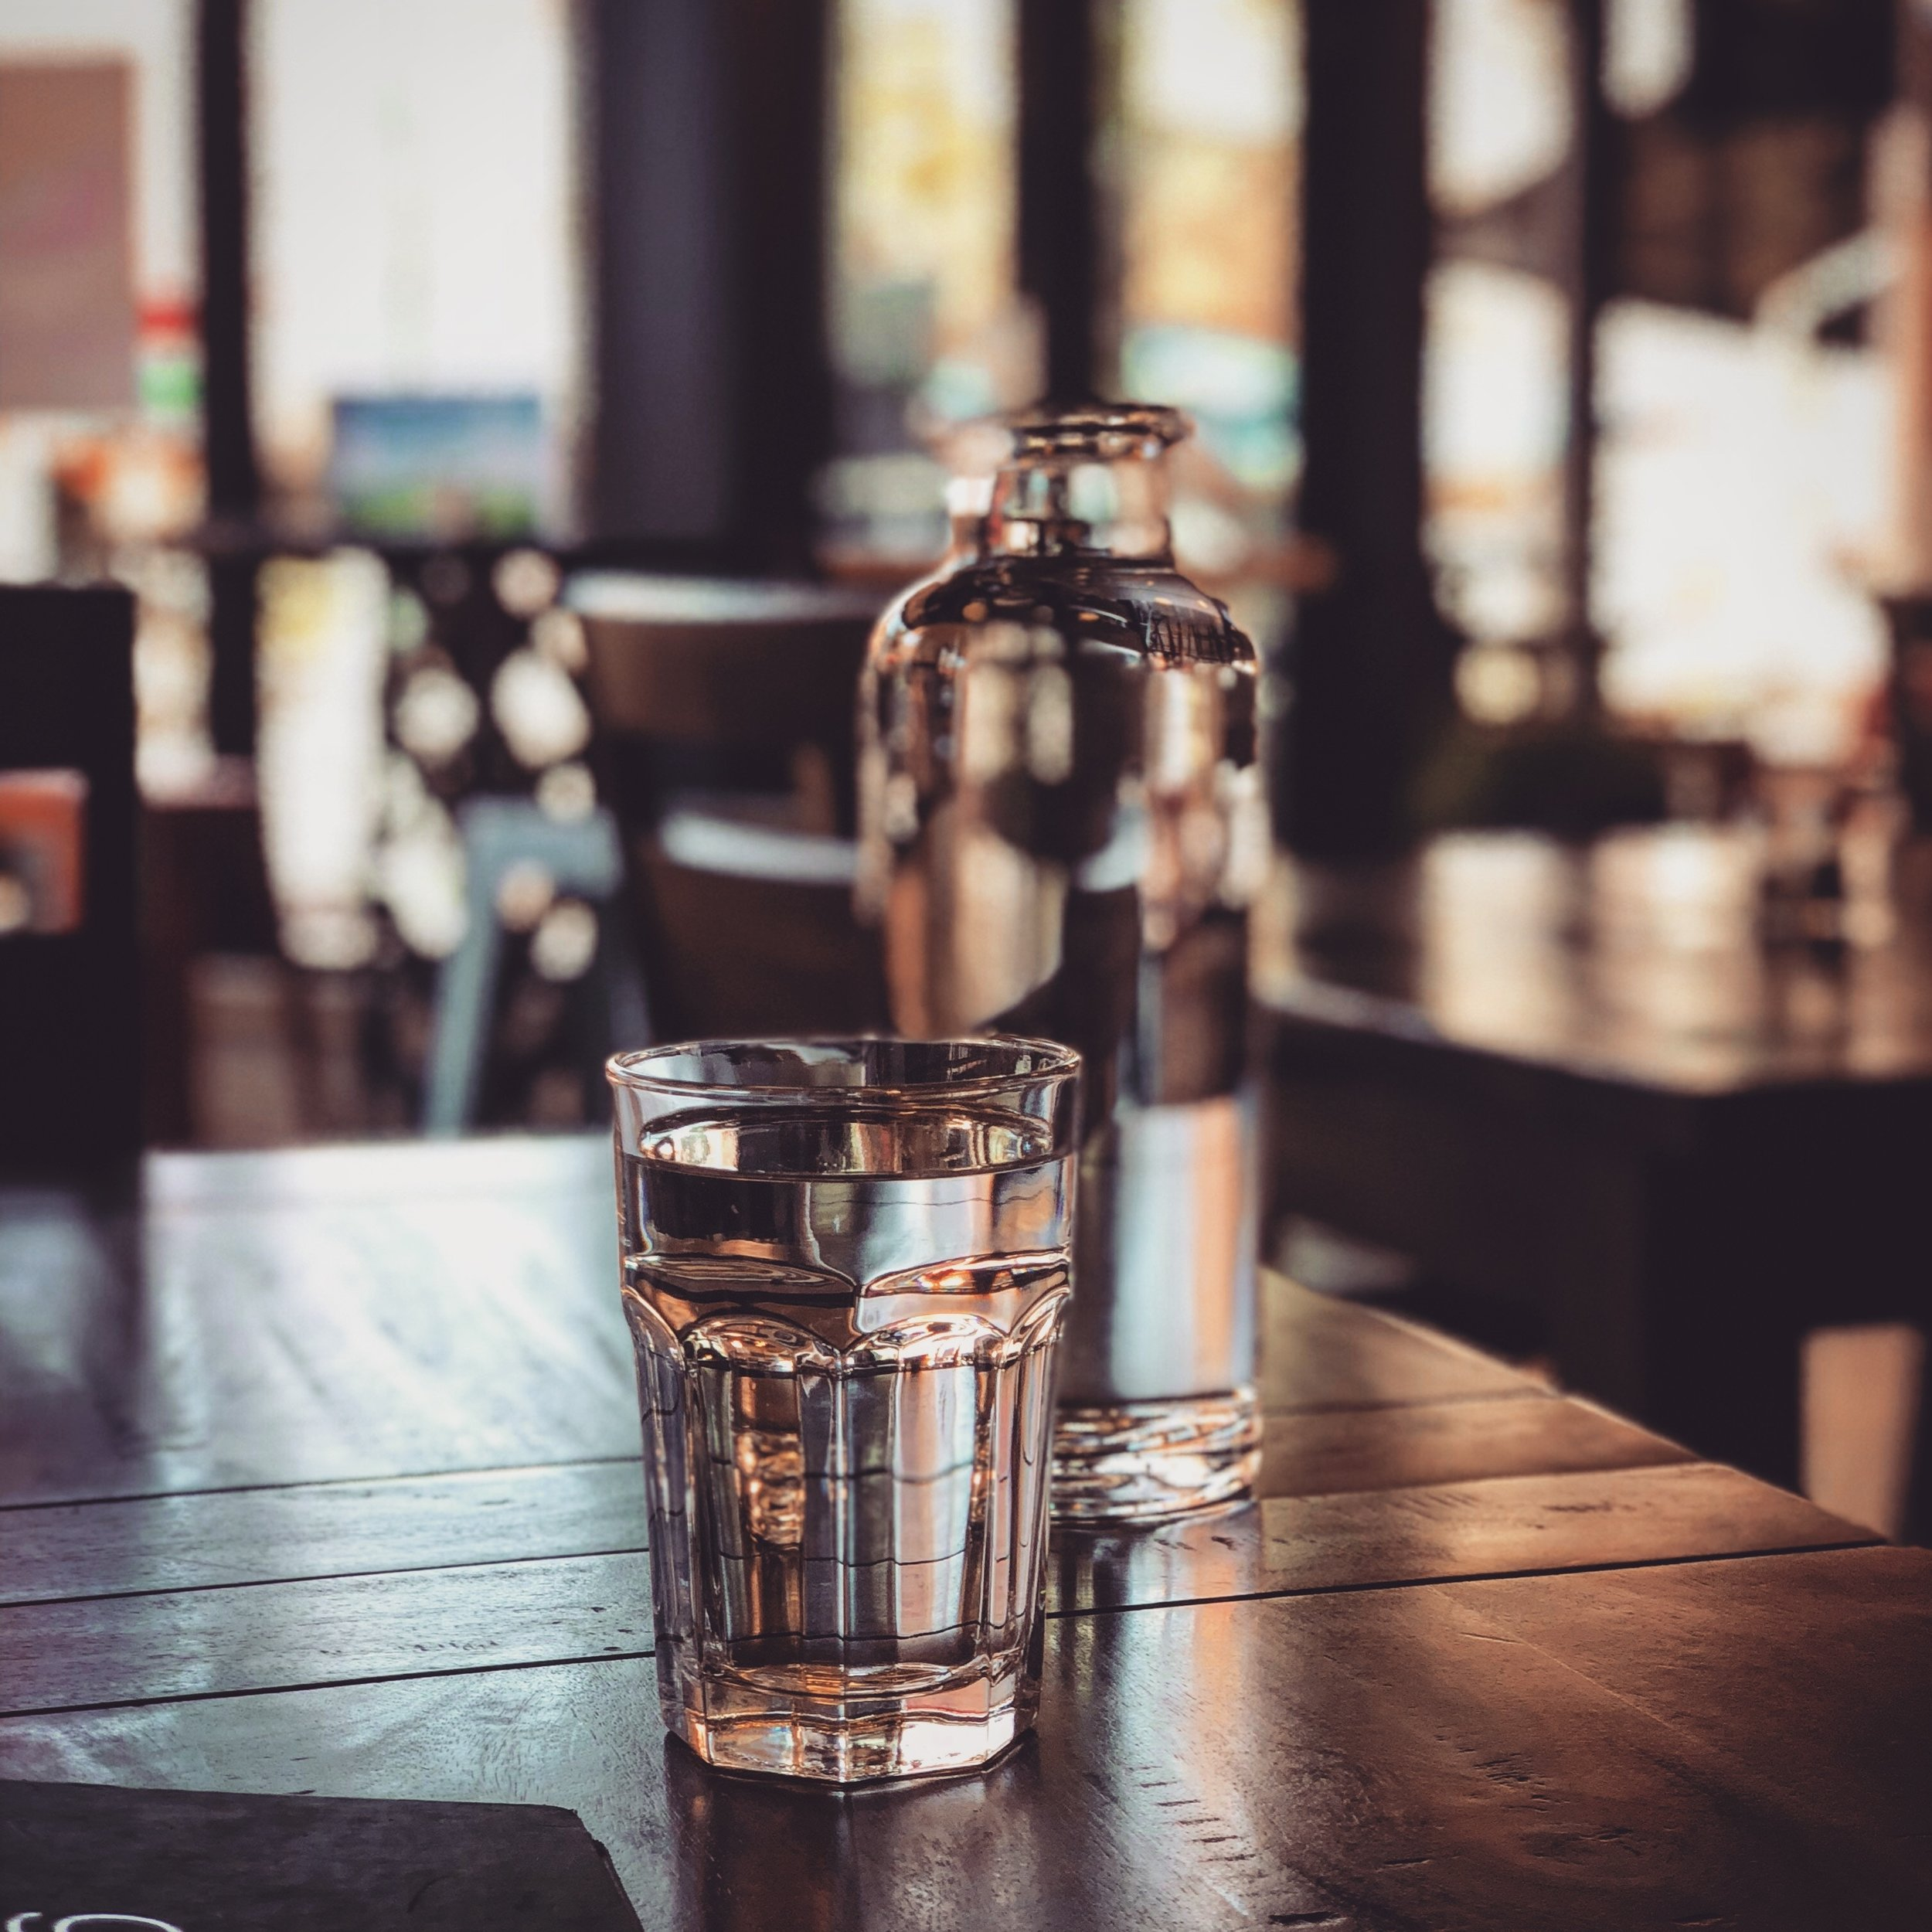 restaurant water stock photo - unsplash.jpg